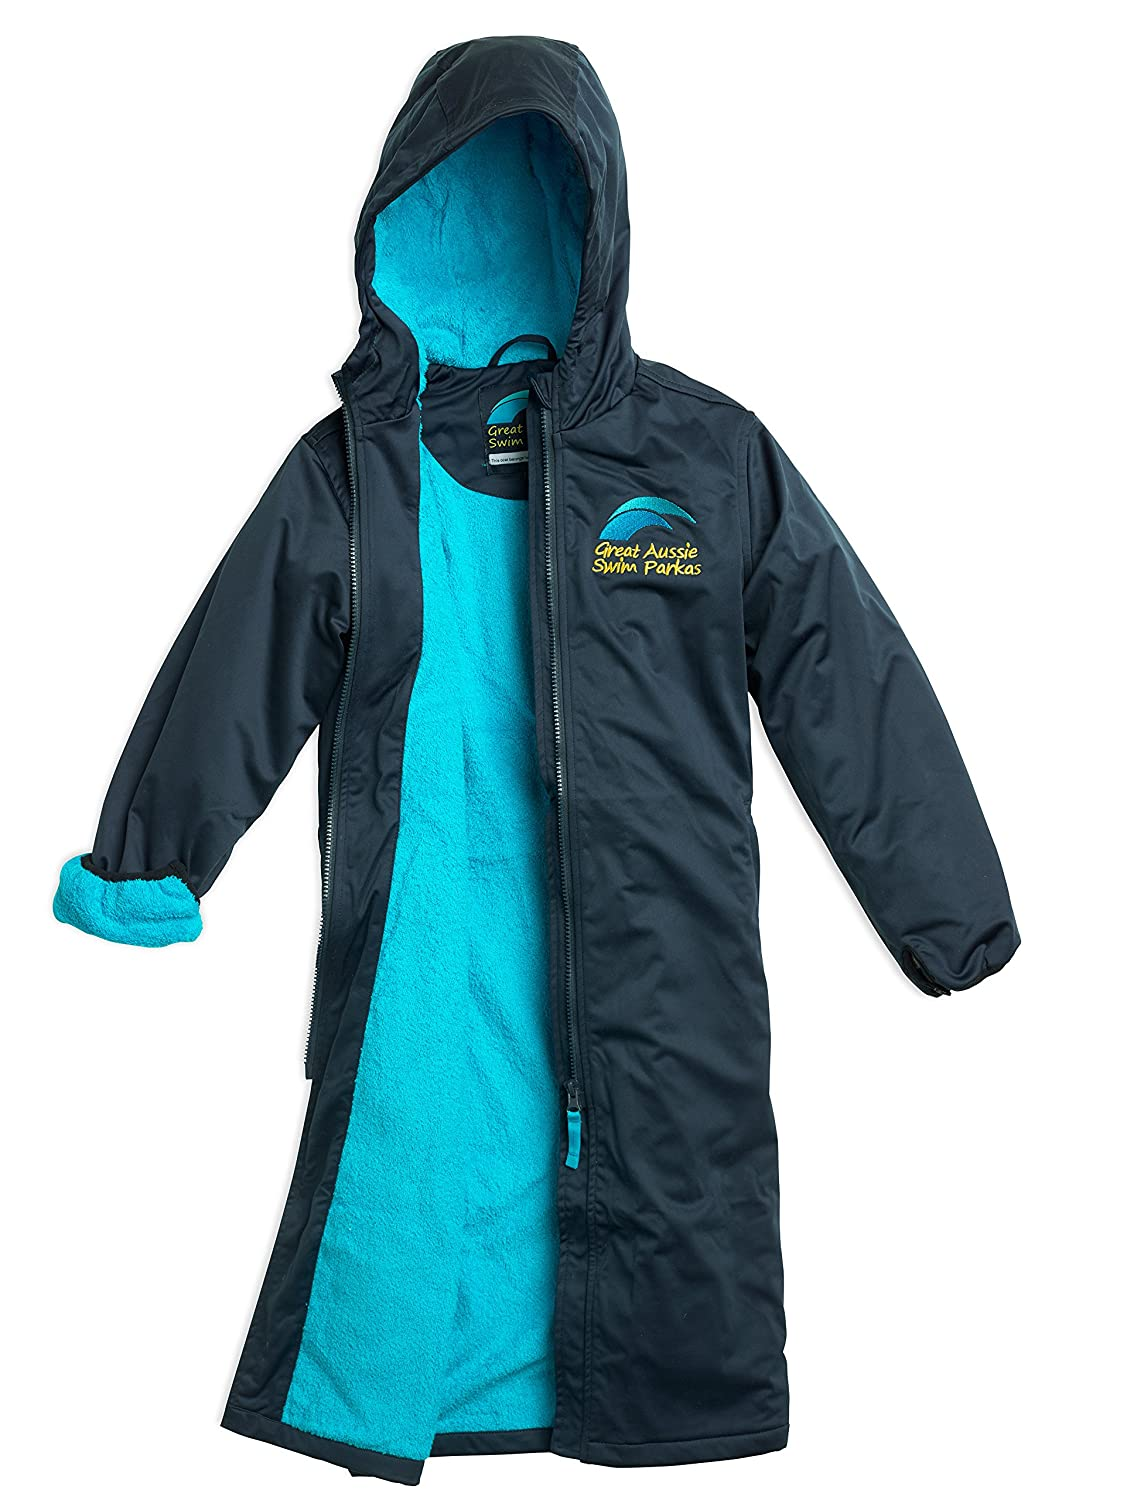 Amazon.com: TYR Team Parka: Sports & Outdoors